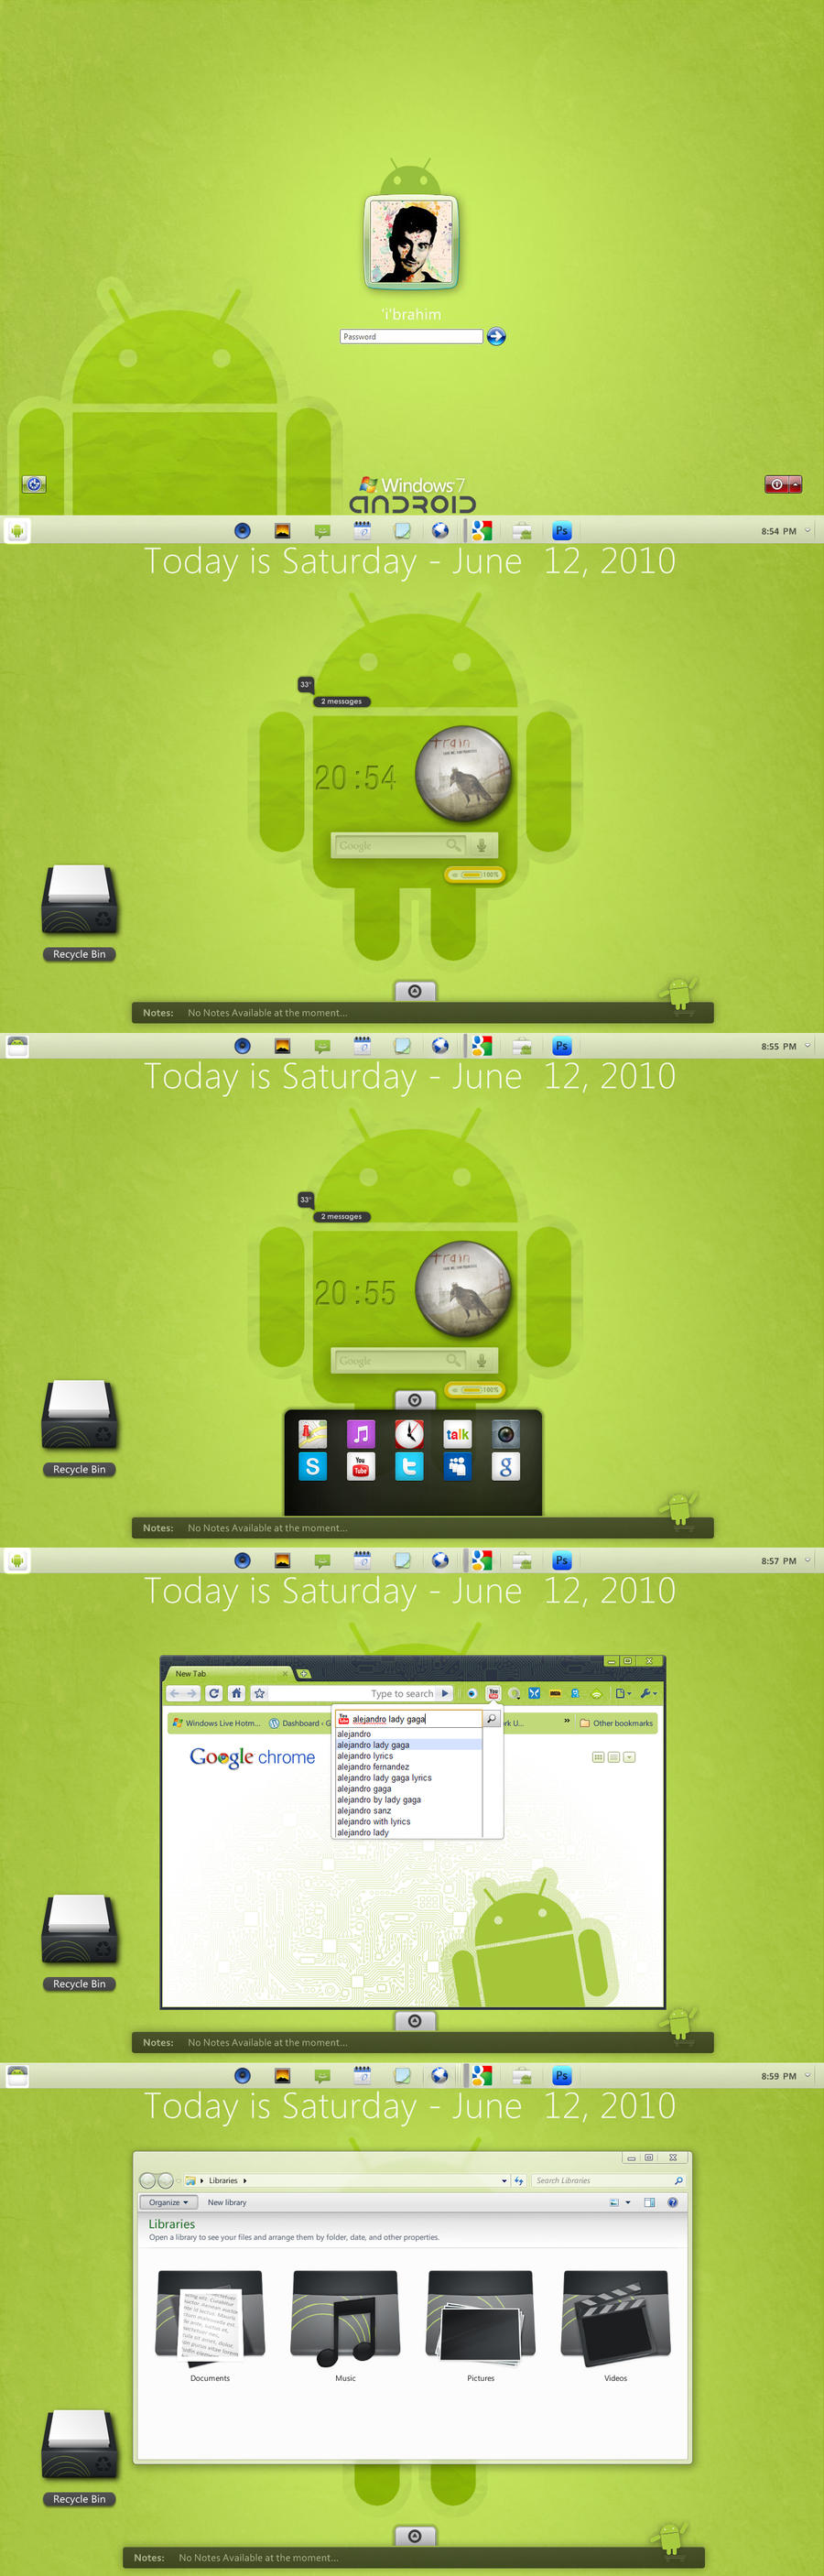 'i'Android Desk - June 2010 by ibg-5